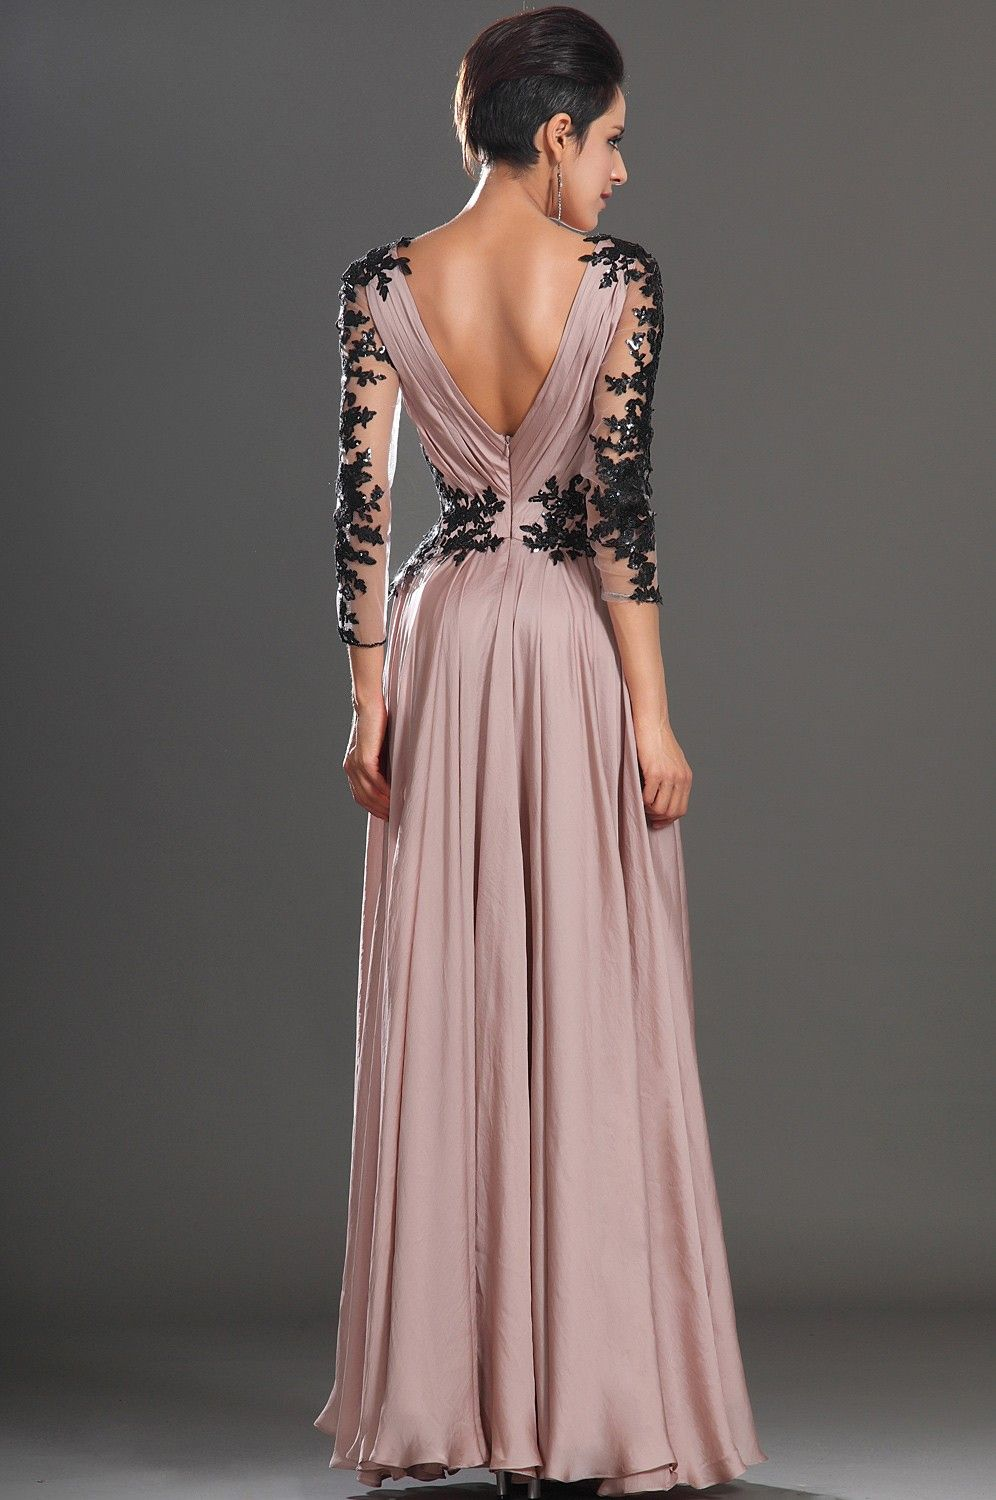 Love this mother of the bride dress however a little low in the back